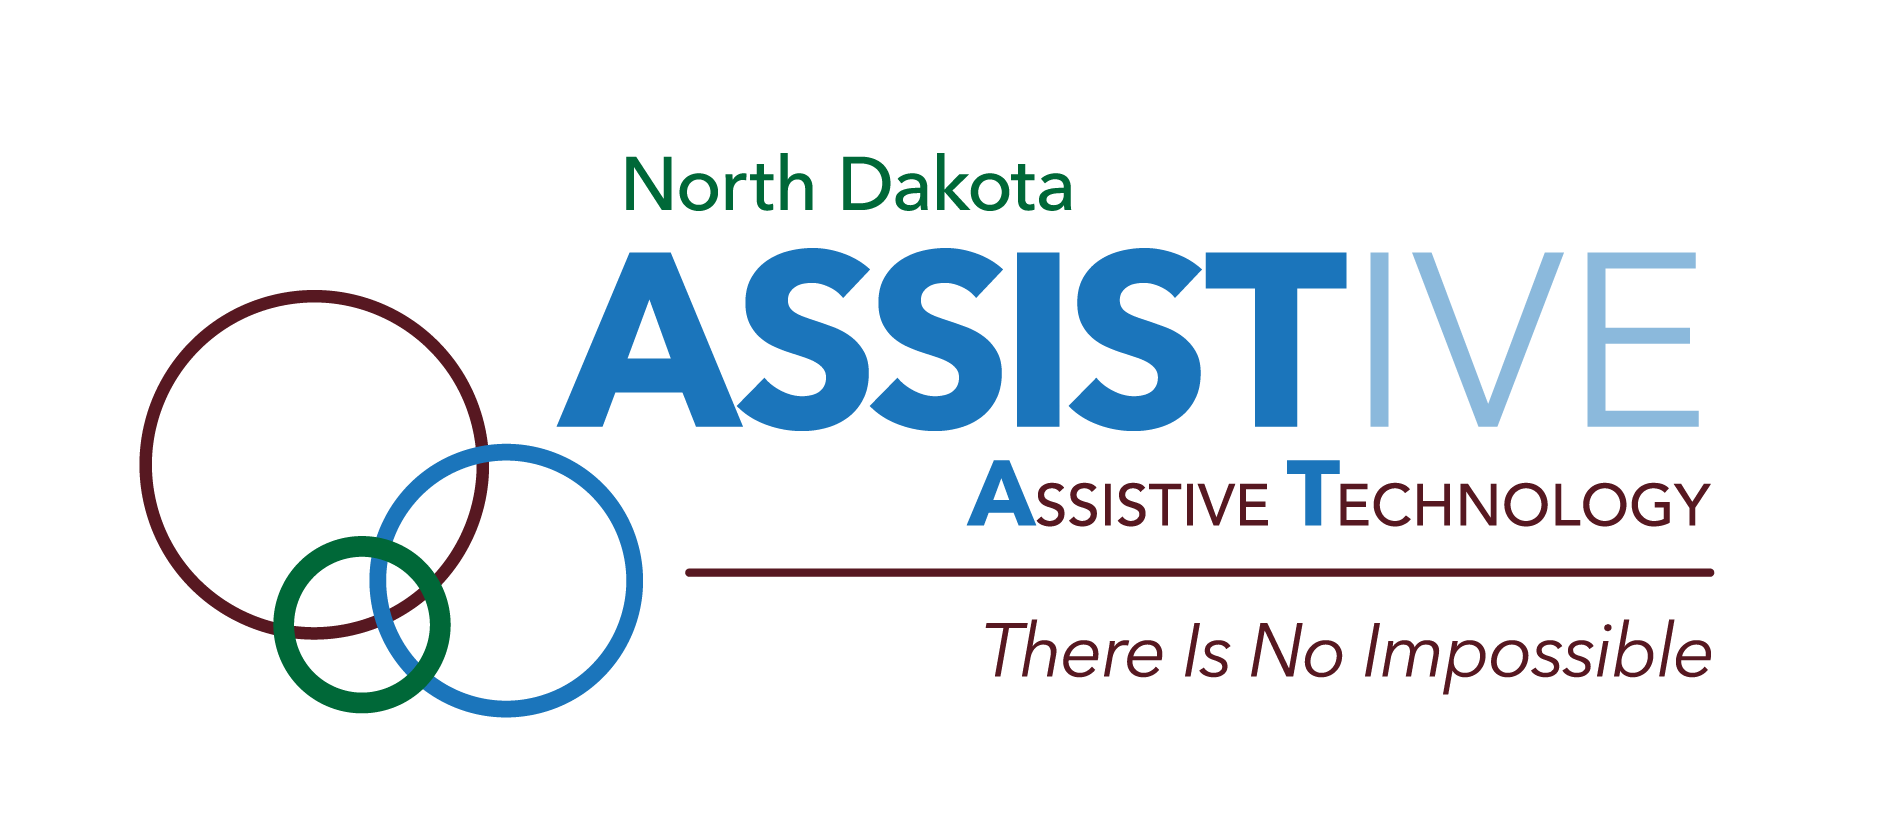 North Dakota Assistive, Assistive Technology, There is No Impossible!